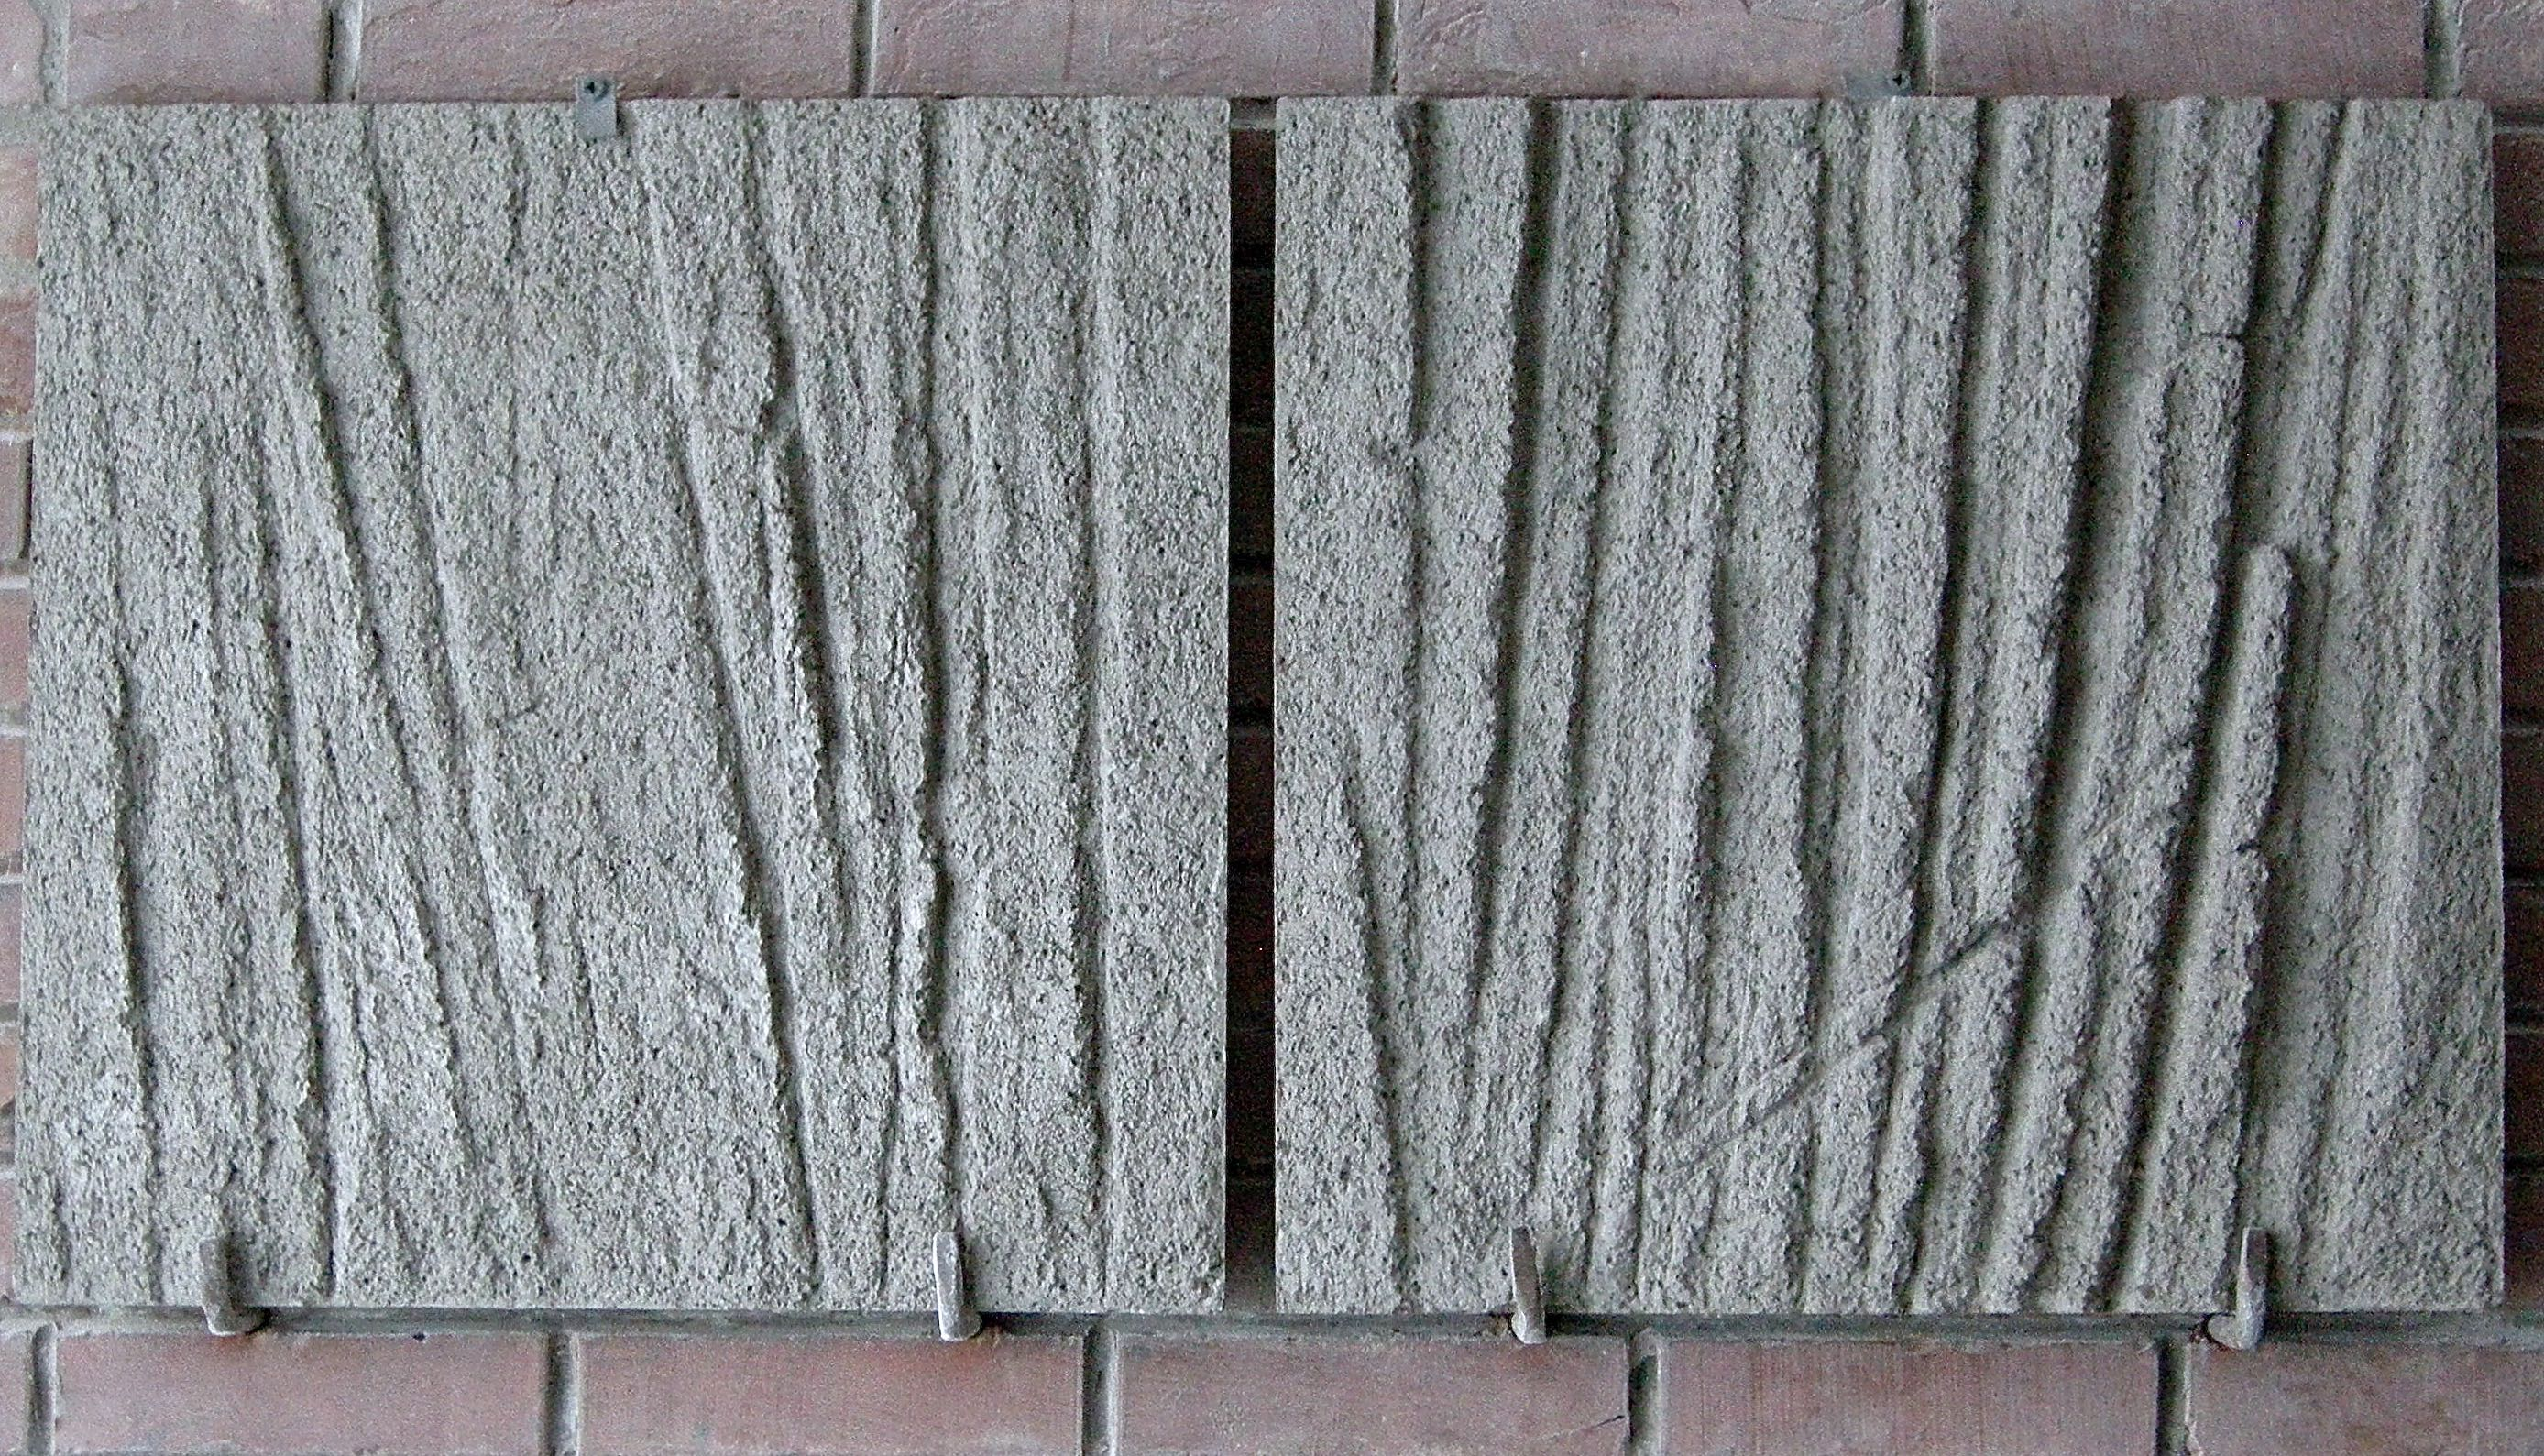 Vertical structure II, 2016, two-piece relief, concrete, 55 x 100 cm